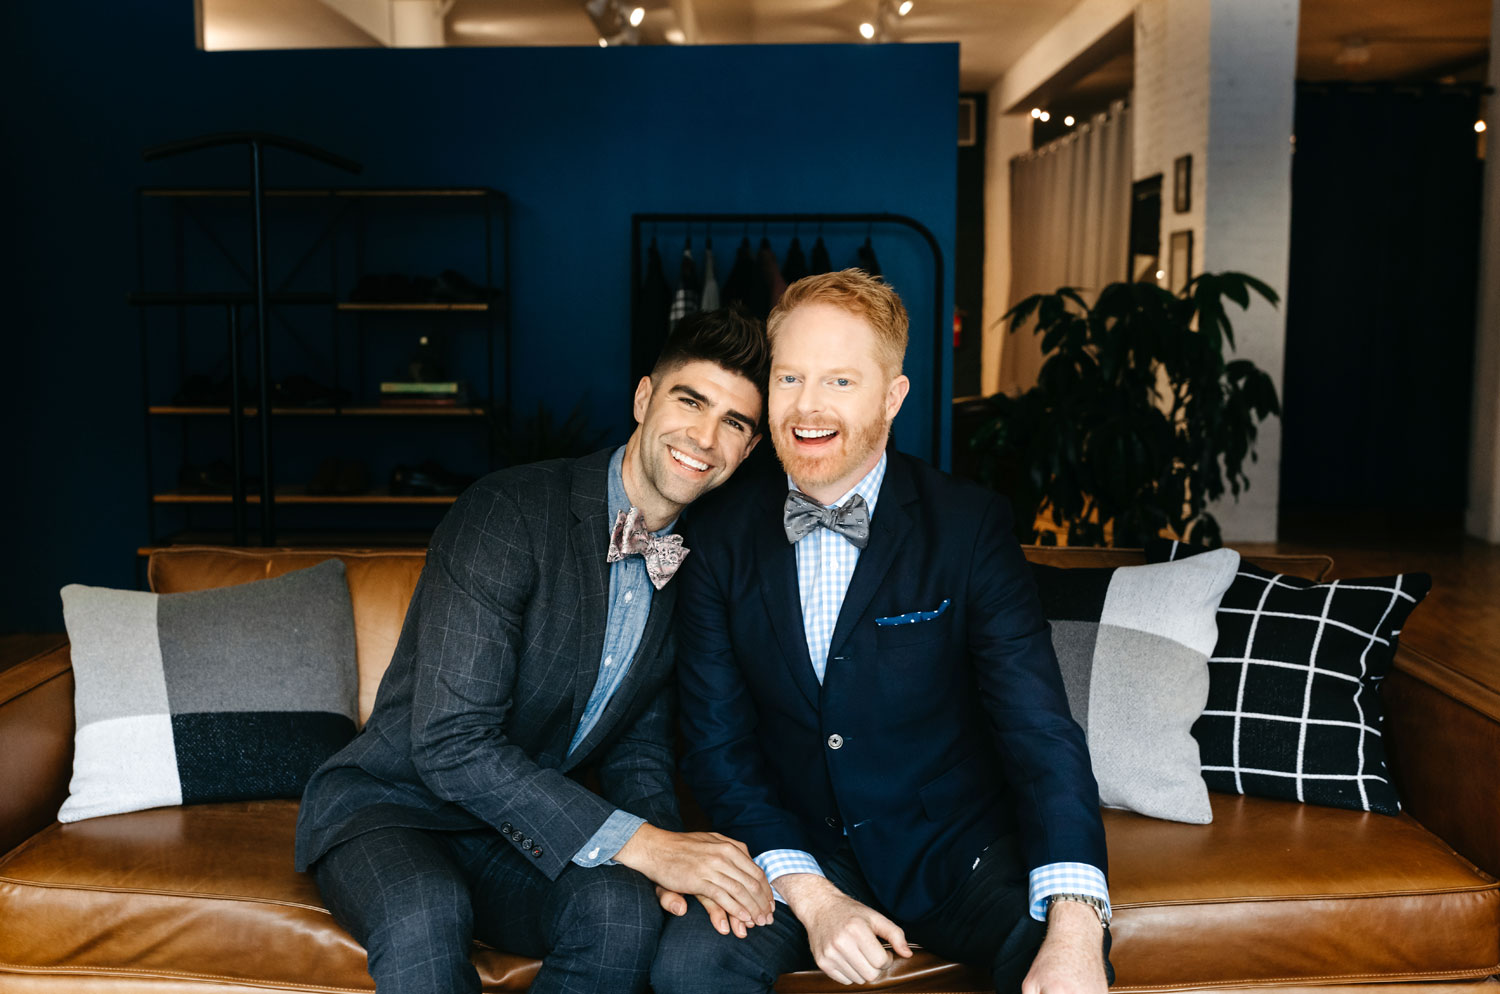 jesse tyler ferguson tells us how his love marches on  exclusive